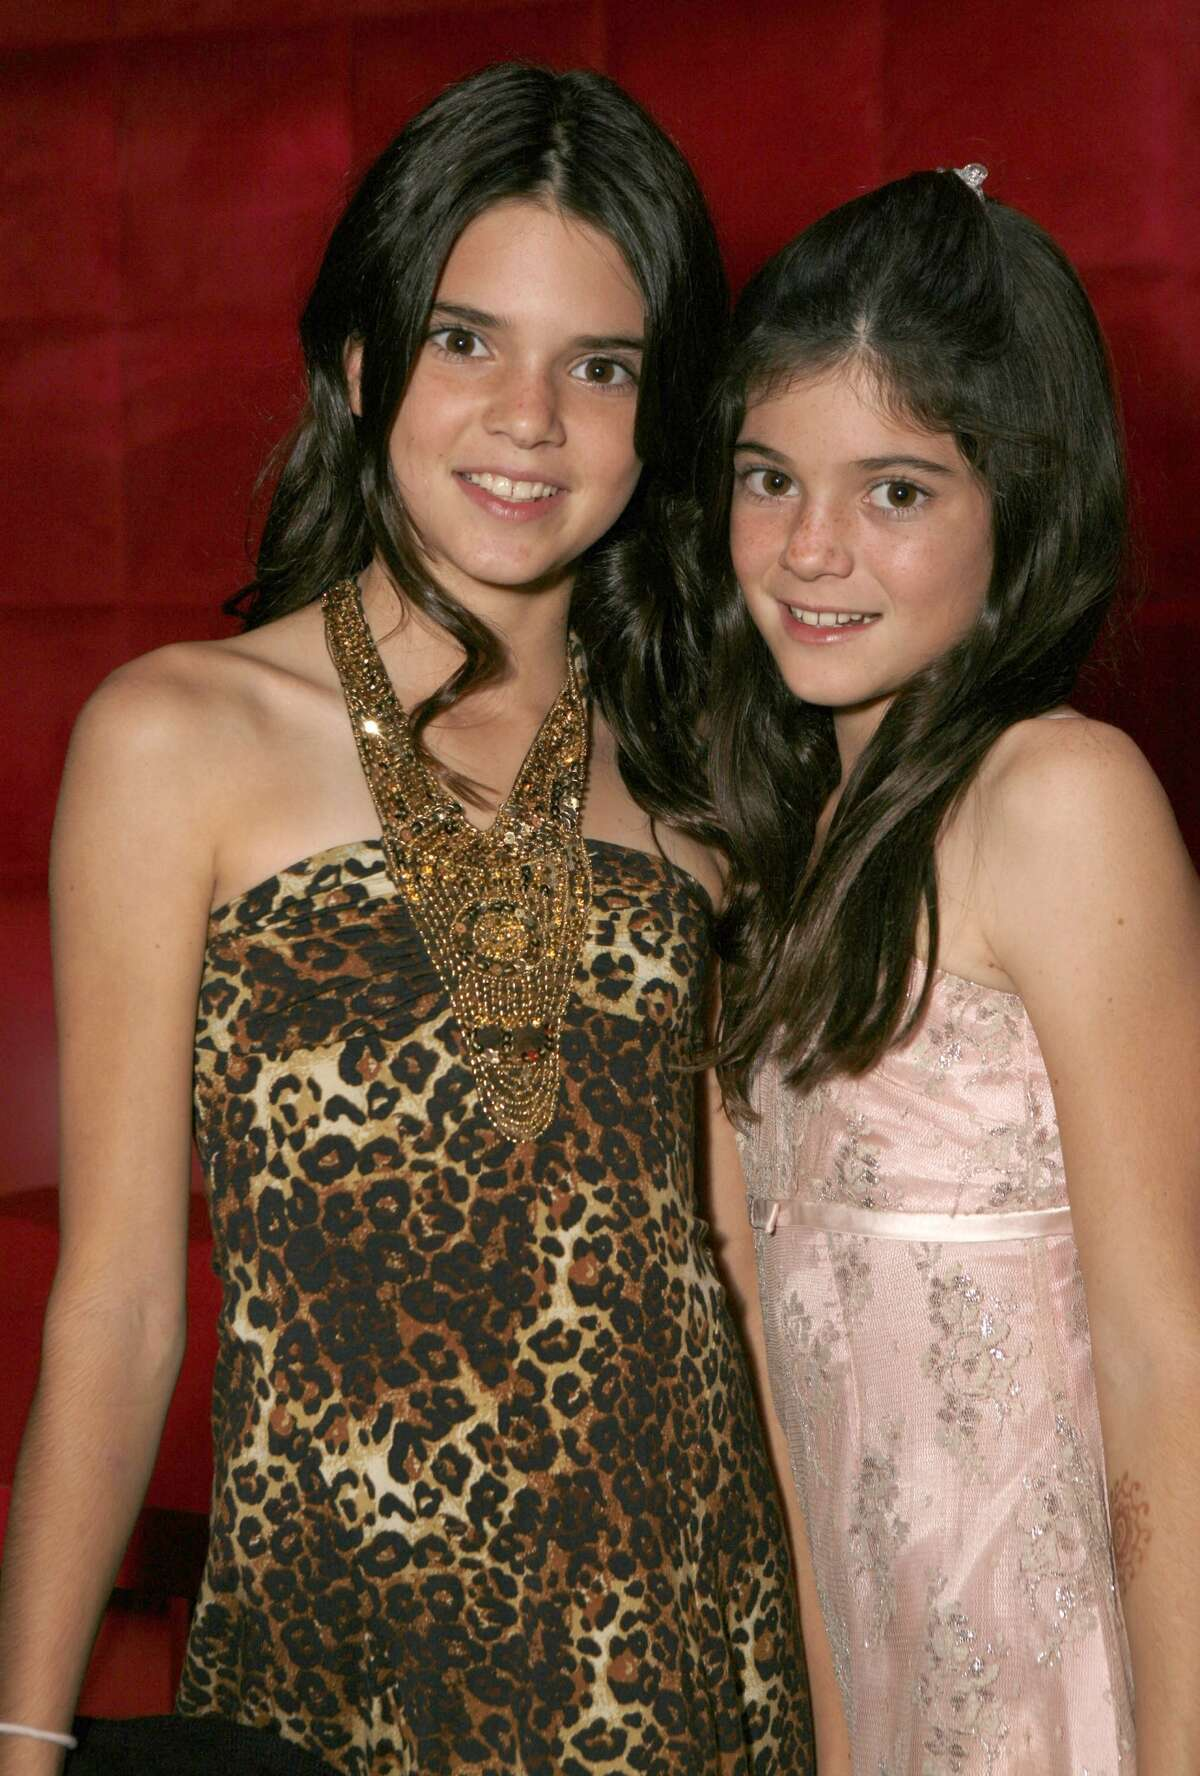 Kendall and Kylie Jenner were just 11 and 10 years old when the show came out.